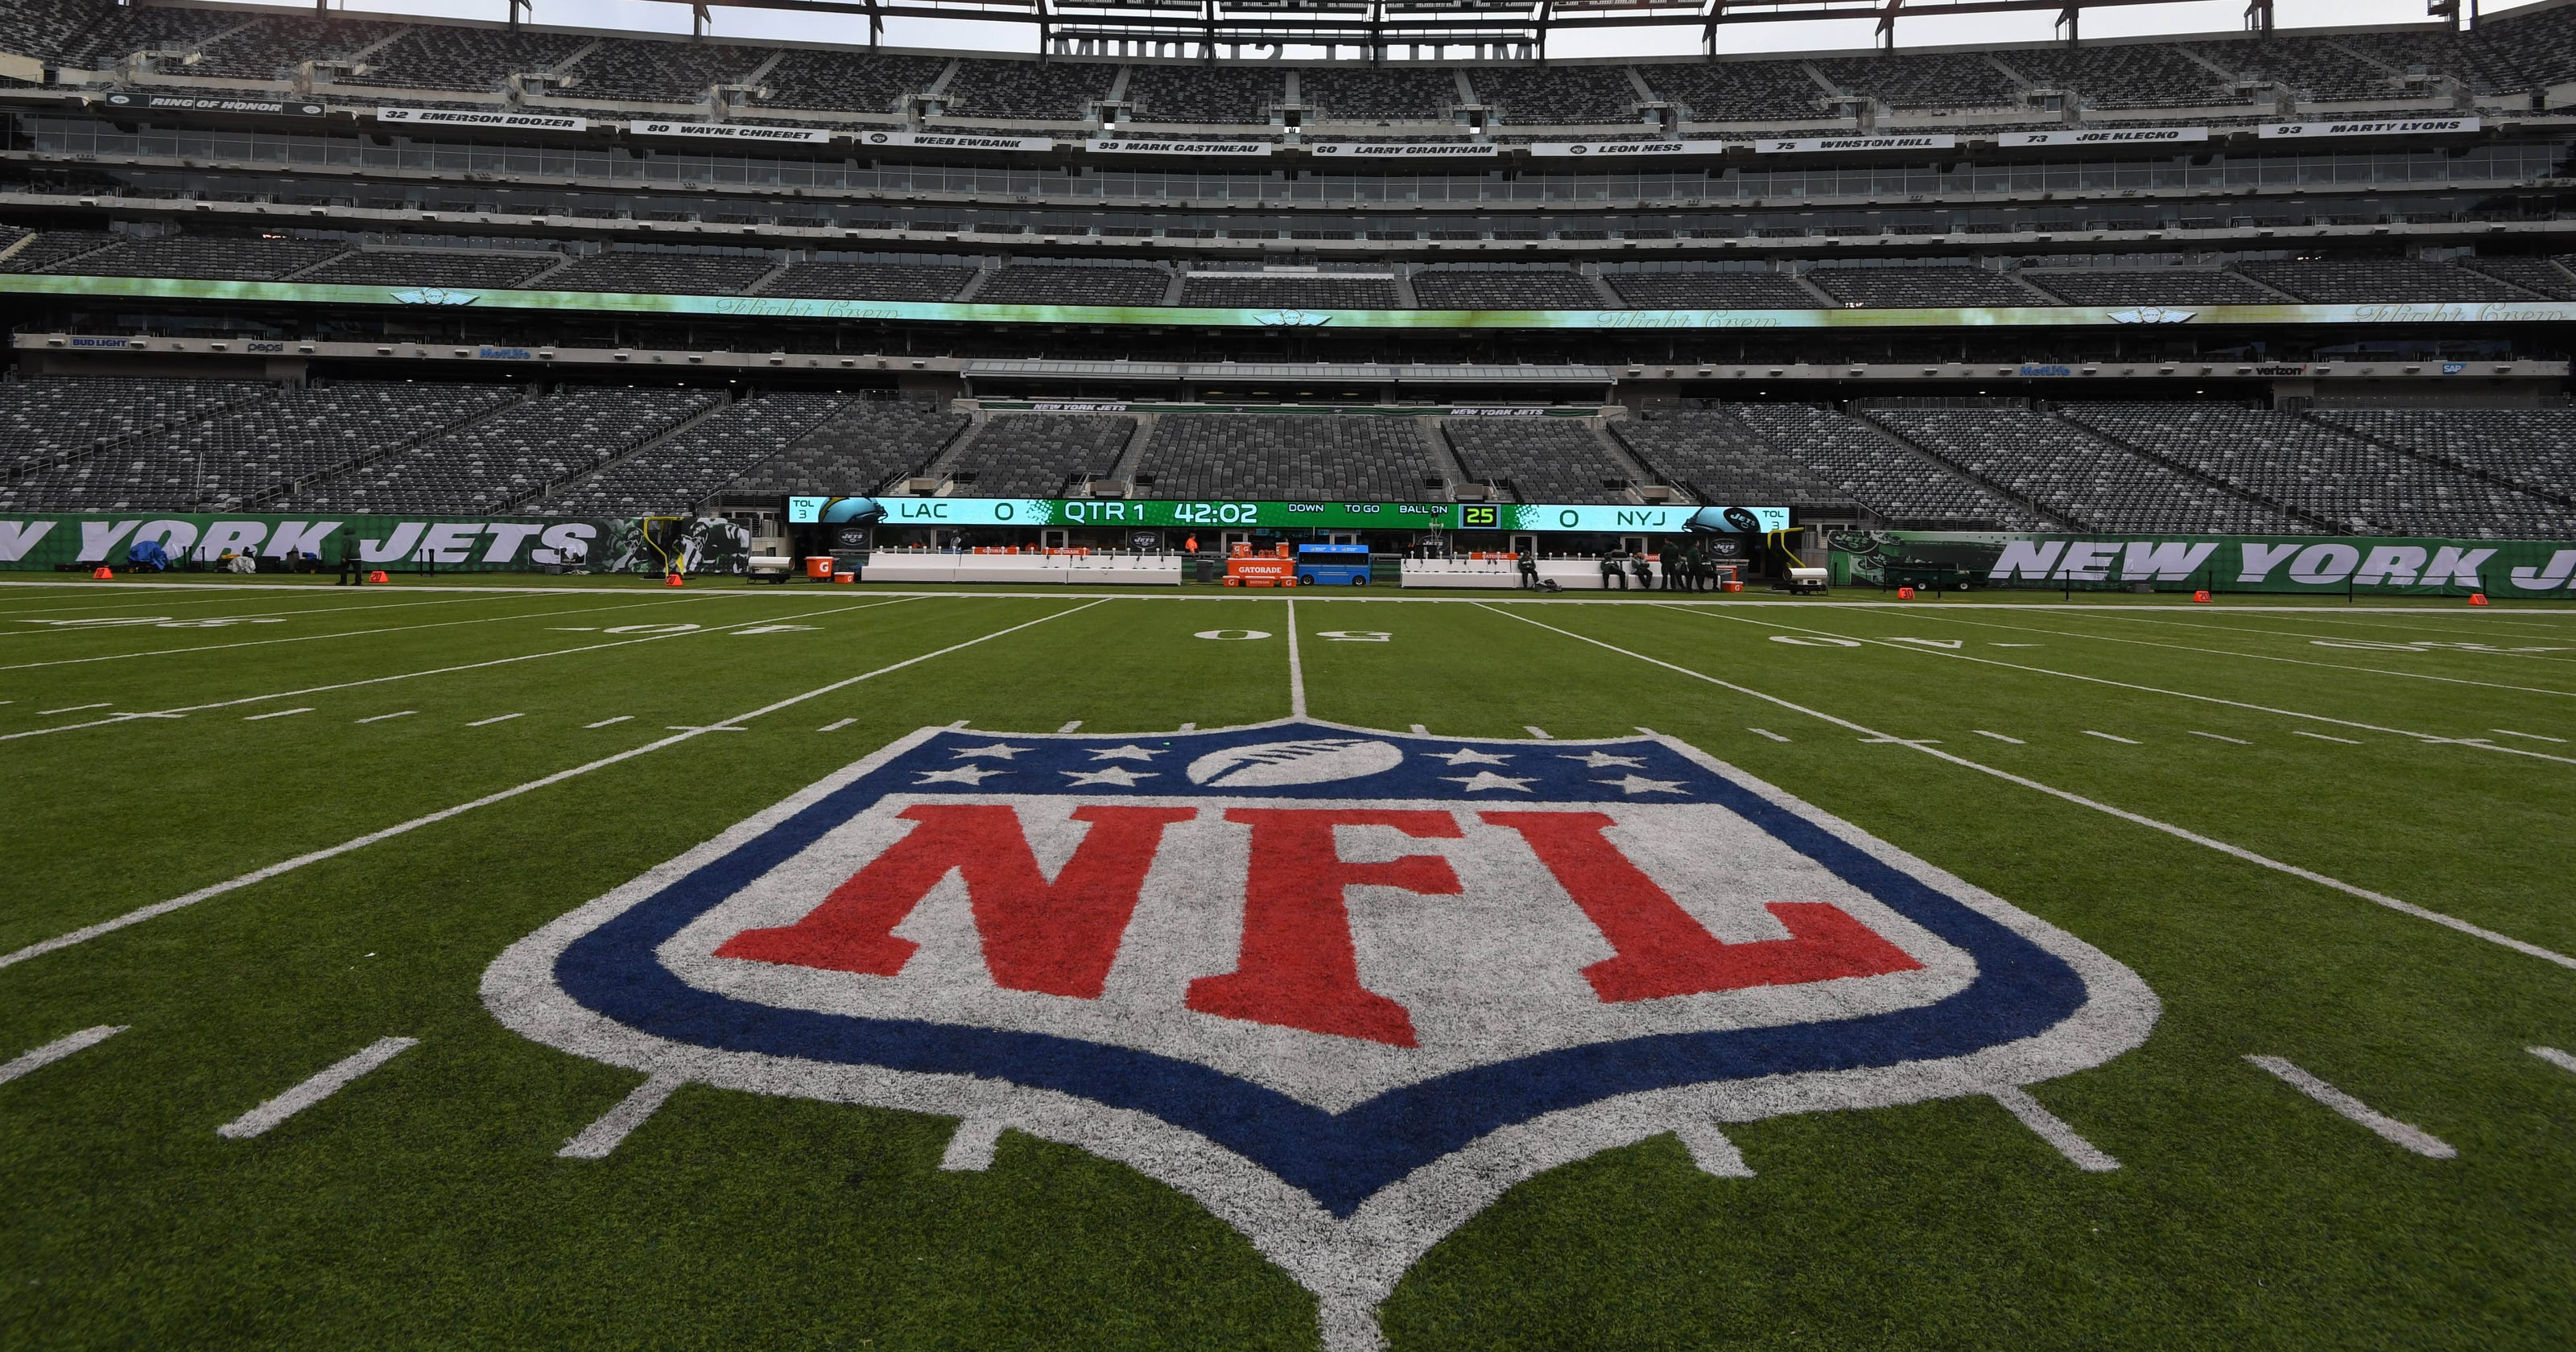 Playoffs Nfl: NFL Playoffs Schedule 2018: Times, Dates, TV Channel, Games